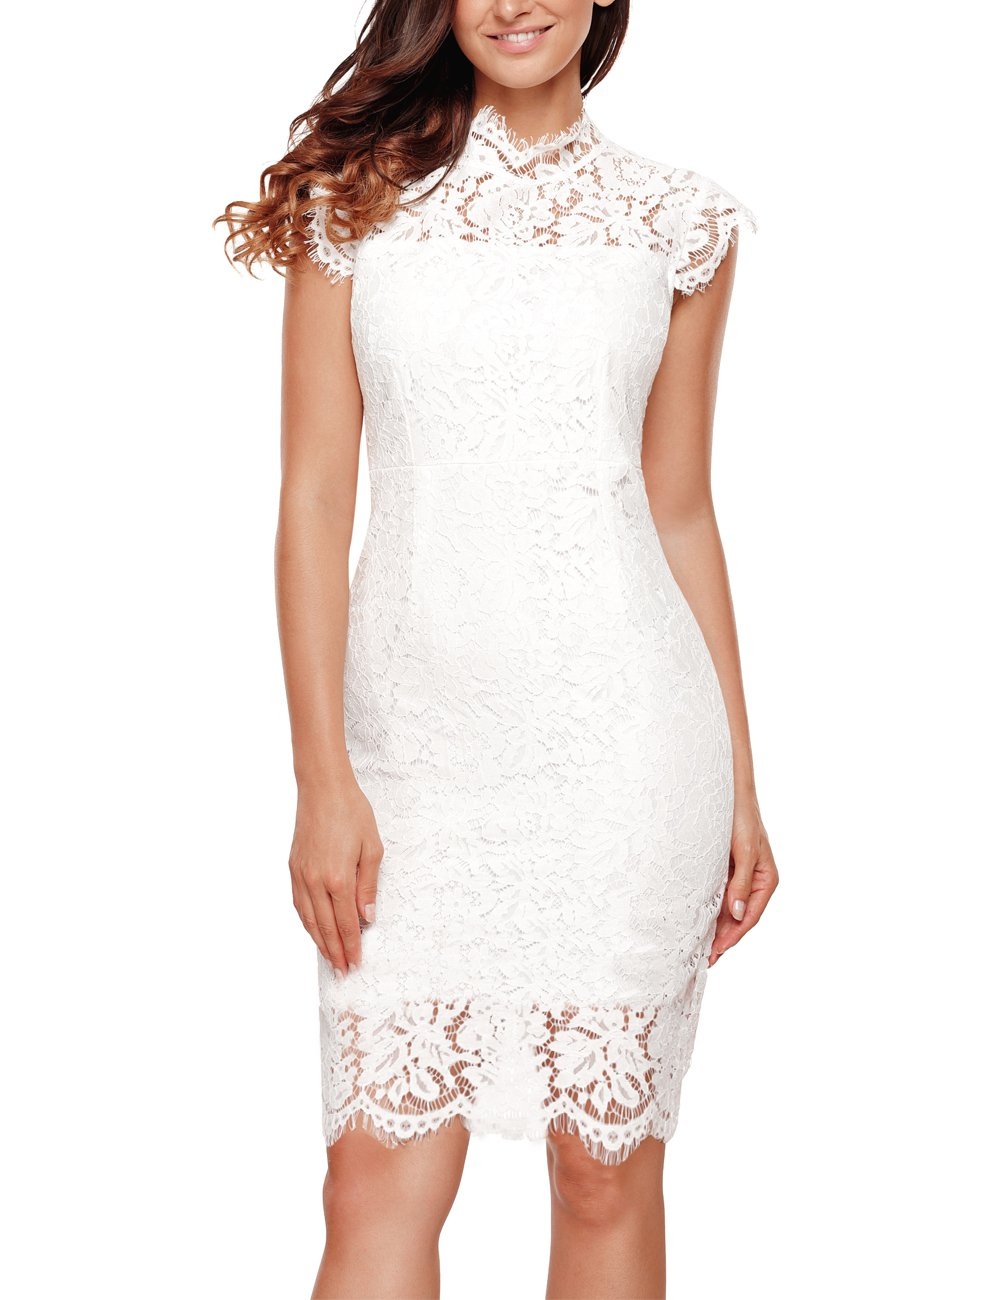 Women's Sleeveless Lace Floral Elegant Cocktail Dress Crew Neck Knee Length for Party, White, Large - wiihuu